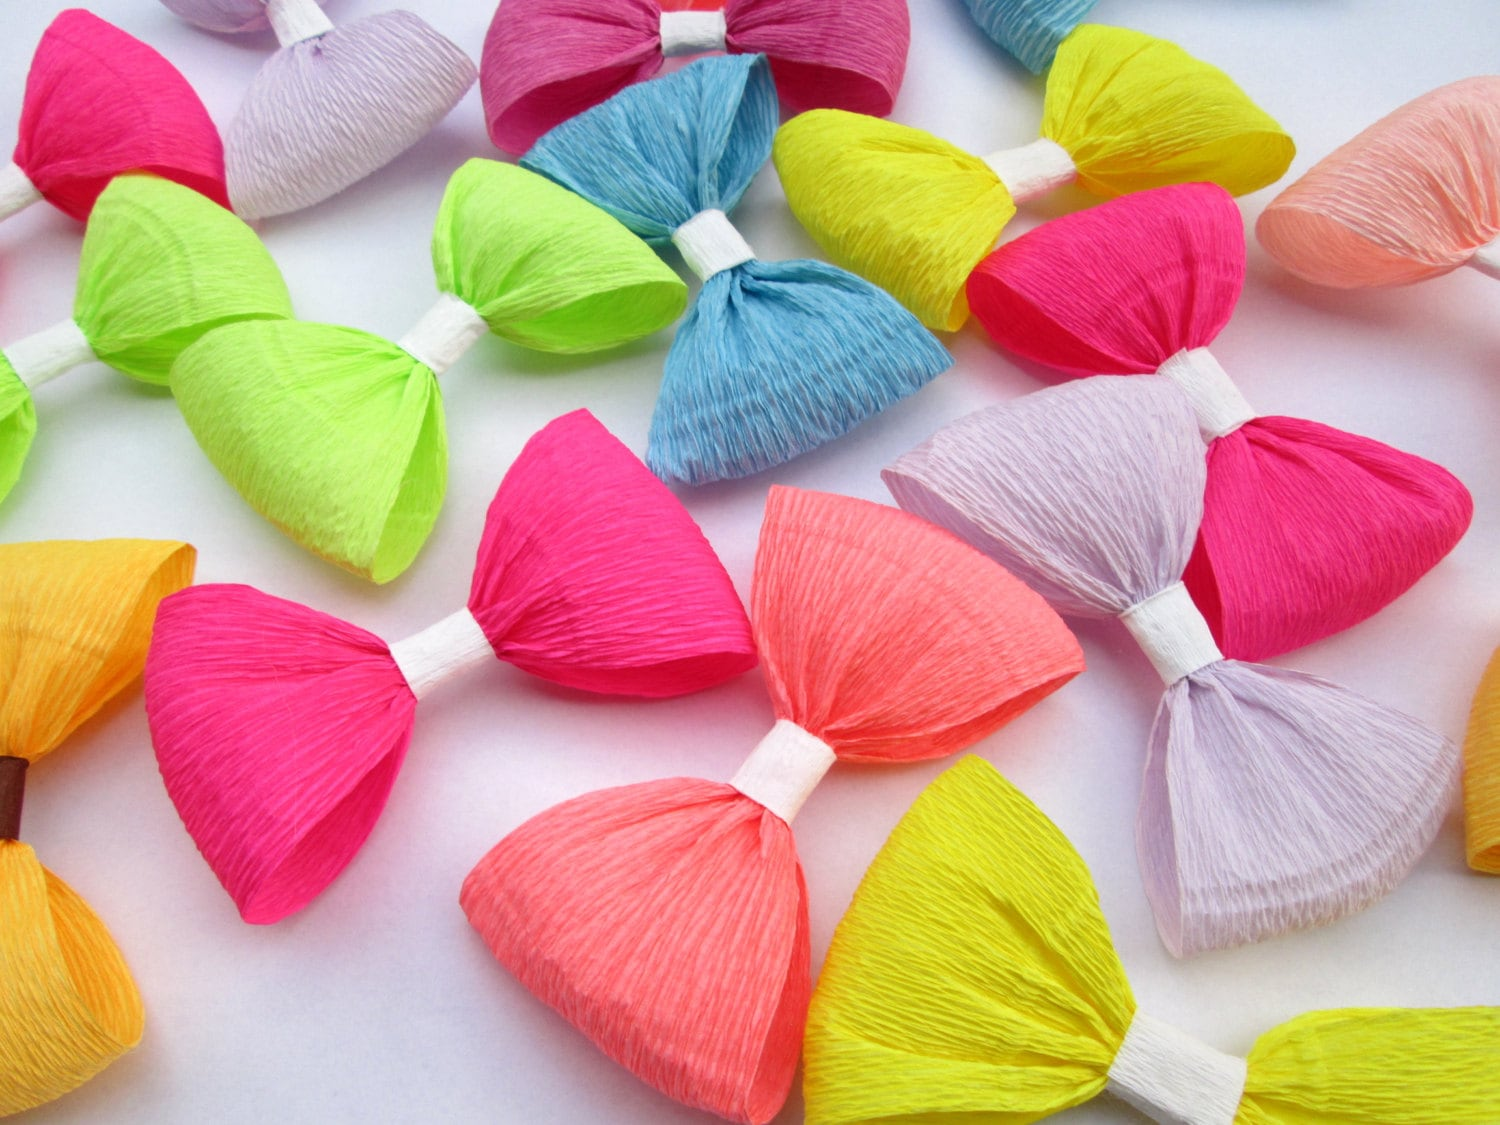 12 paper bows crepe paper bows birthday decoration wedding for Decoration paper